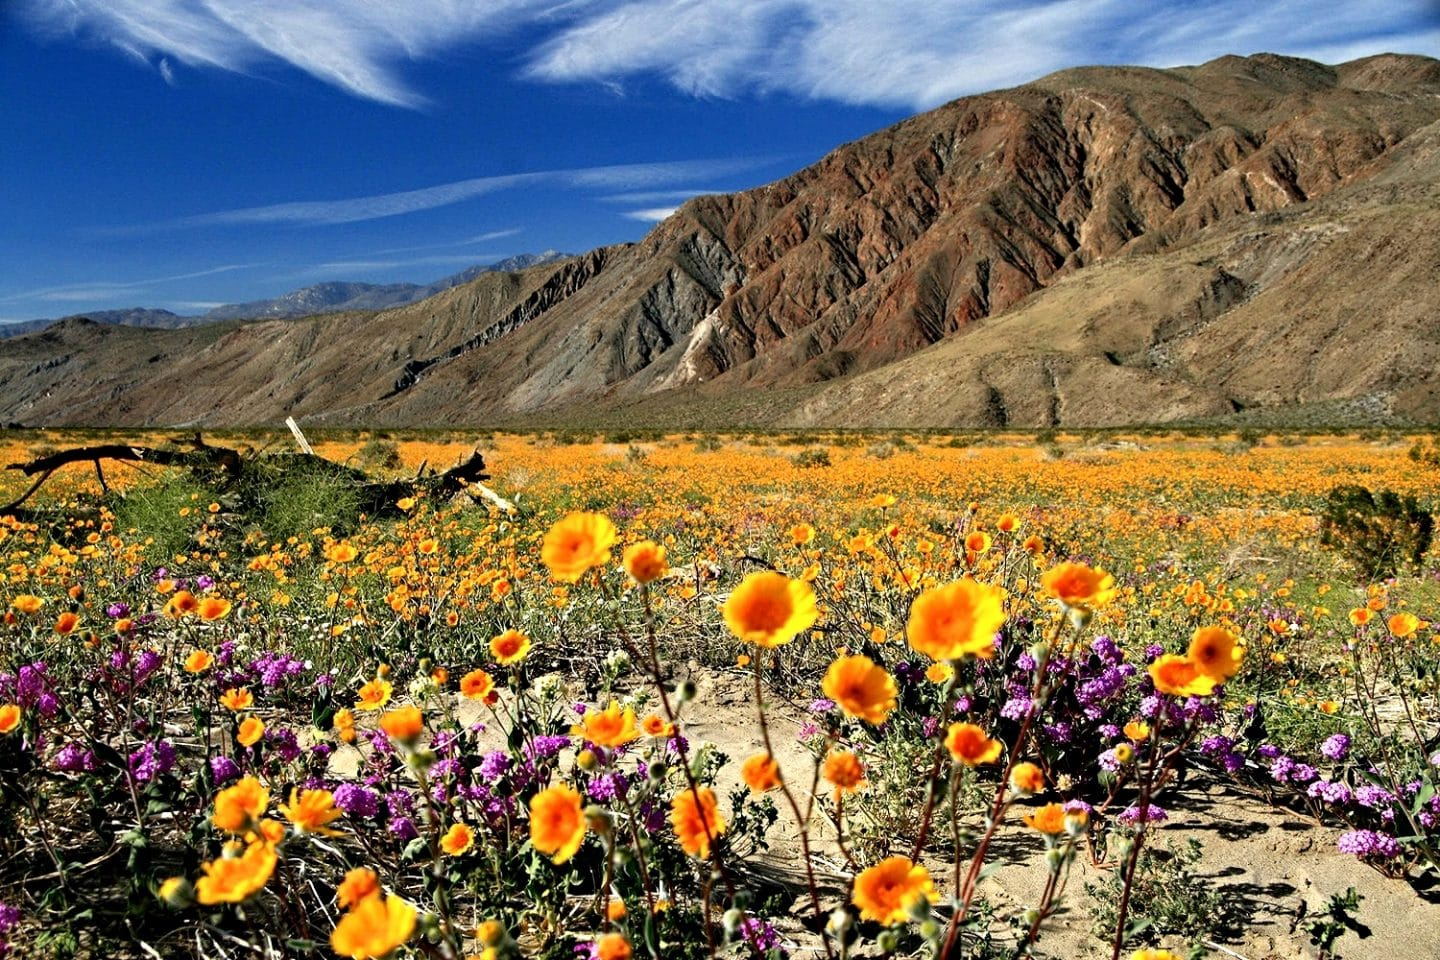 A Rare Super Bloom Of Desert Flowers Will Be The Pop Of Color Your IG Posts Need